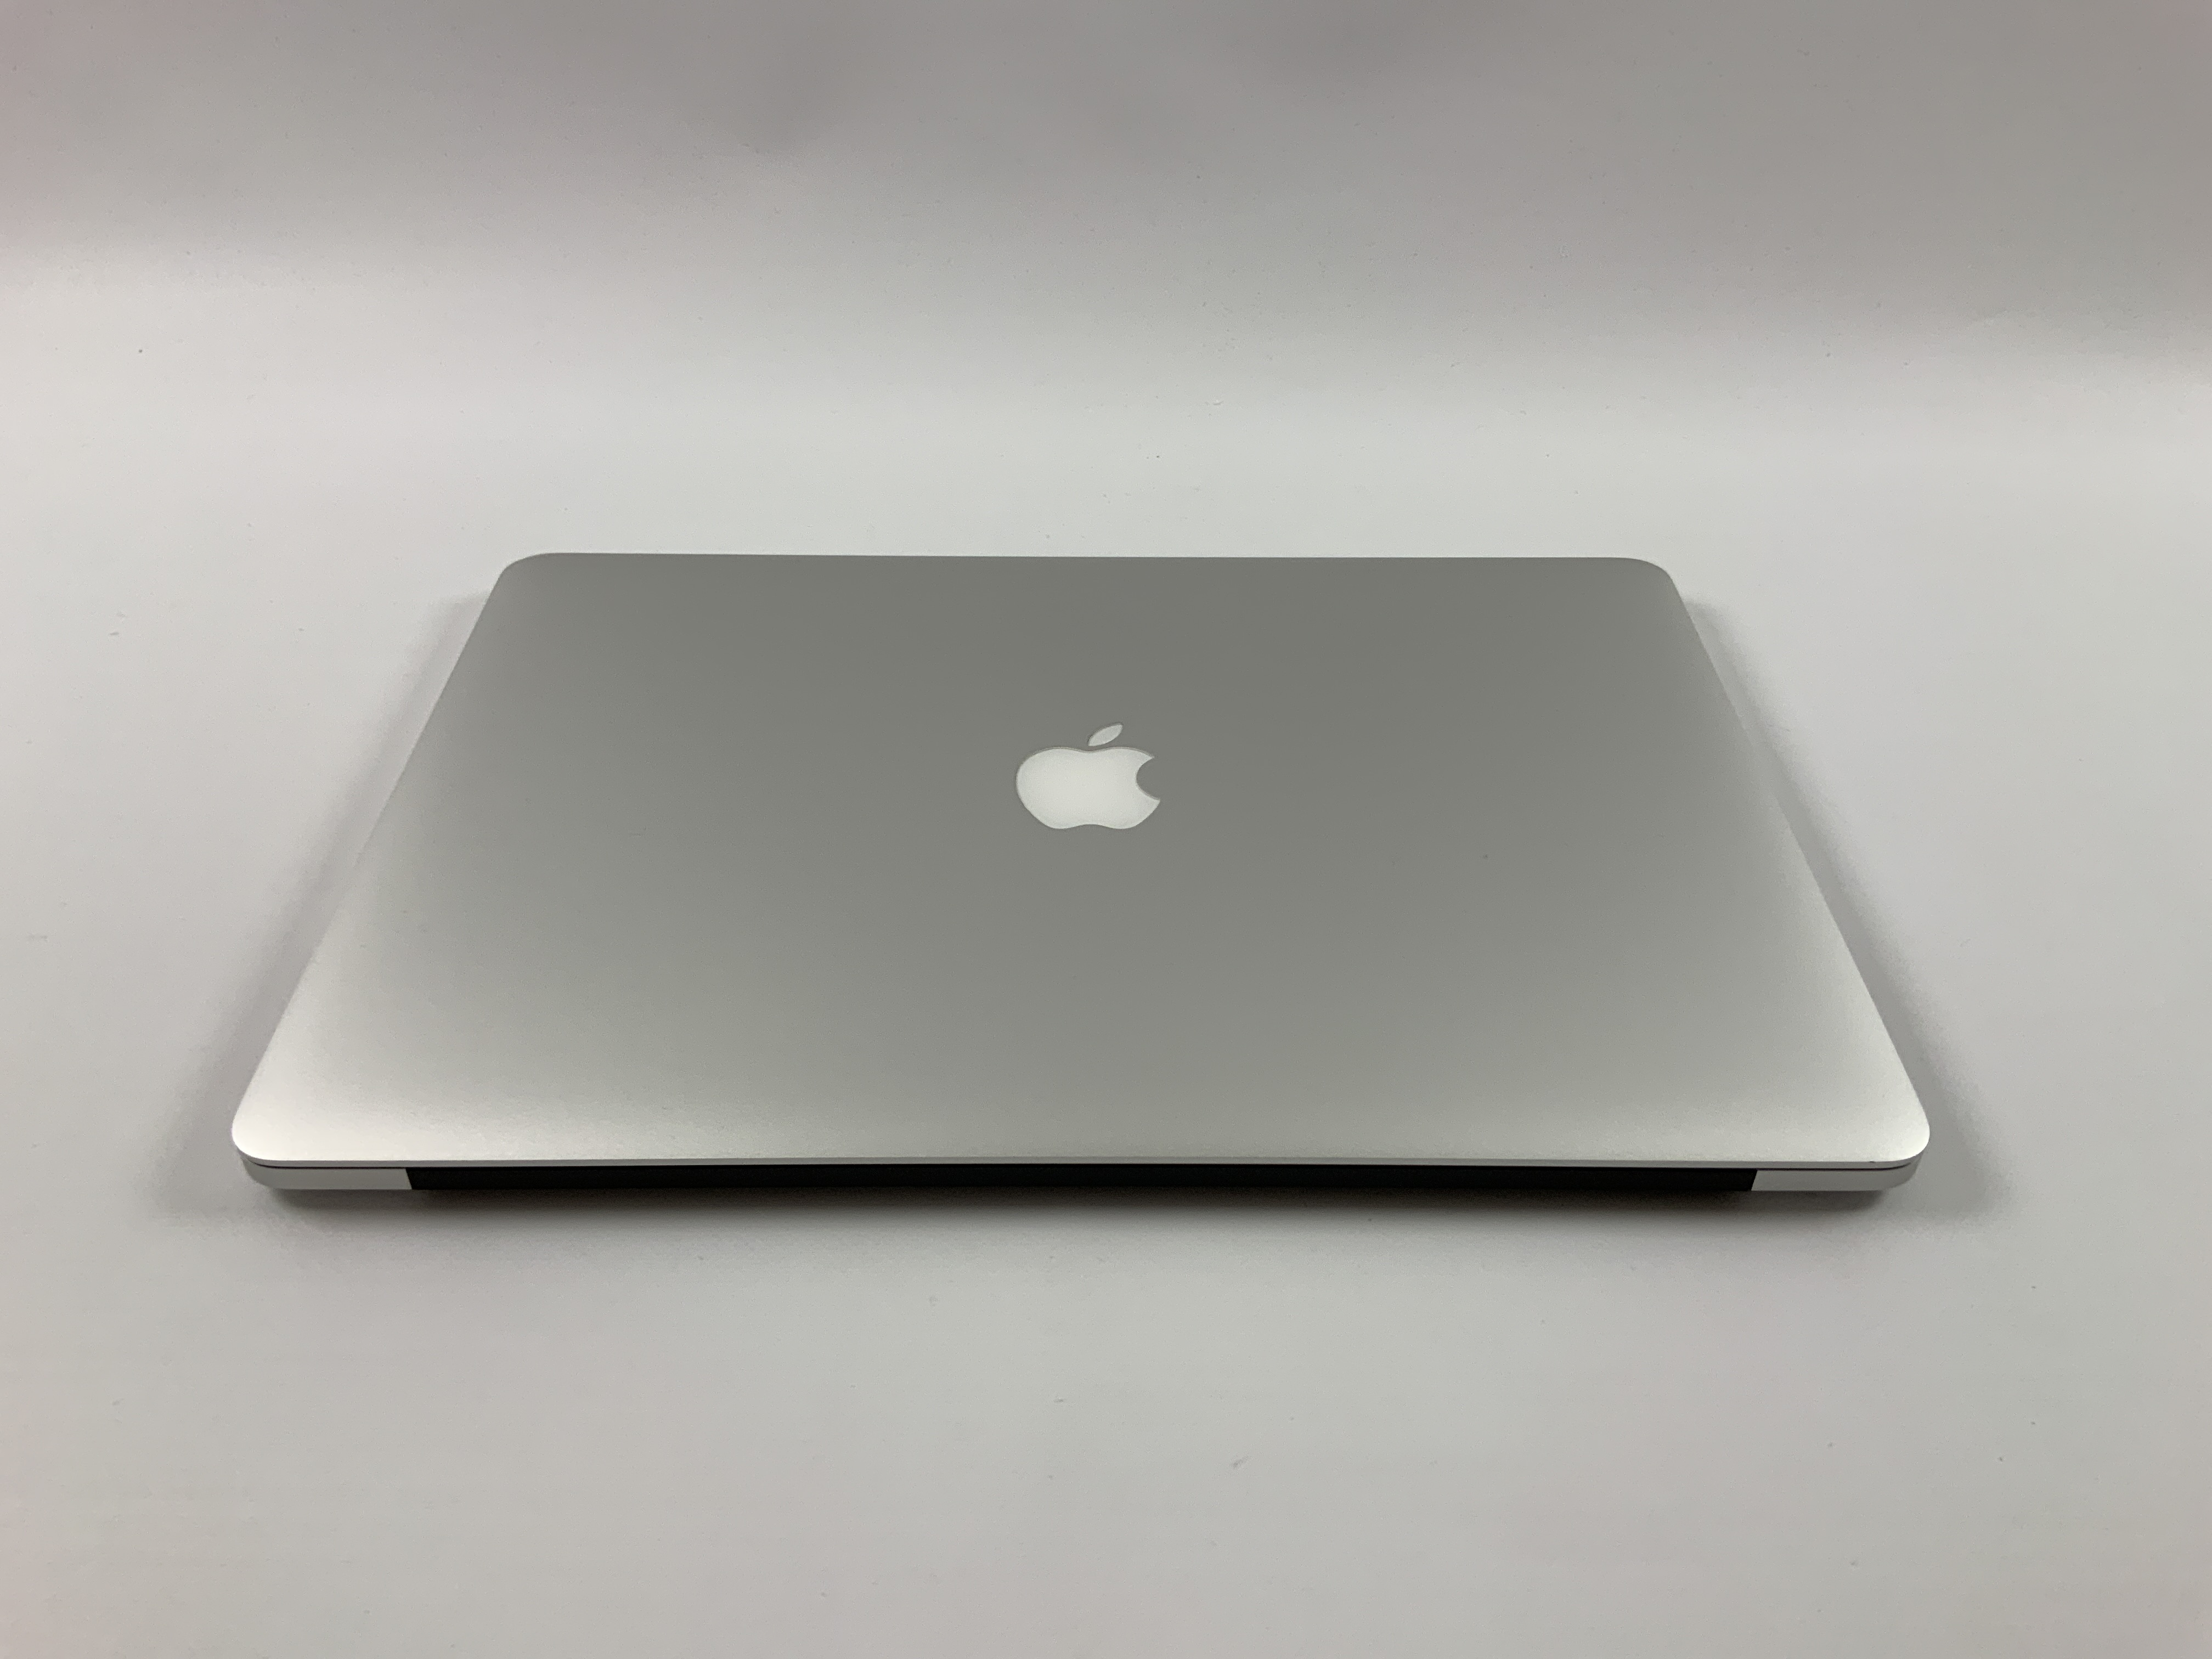 "MacBook Pro Retina 15"" Mid 2015 (Intel Quad-Core i7 2.2 GHz 16 GB RAM 256 GB SSD), Intel Quad-Core i7 2.2 GHz, 16 GB RAM, 256 GB SSD, obraz 2"